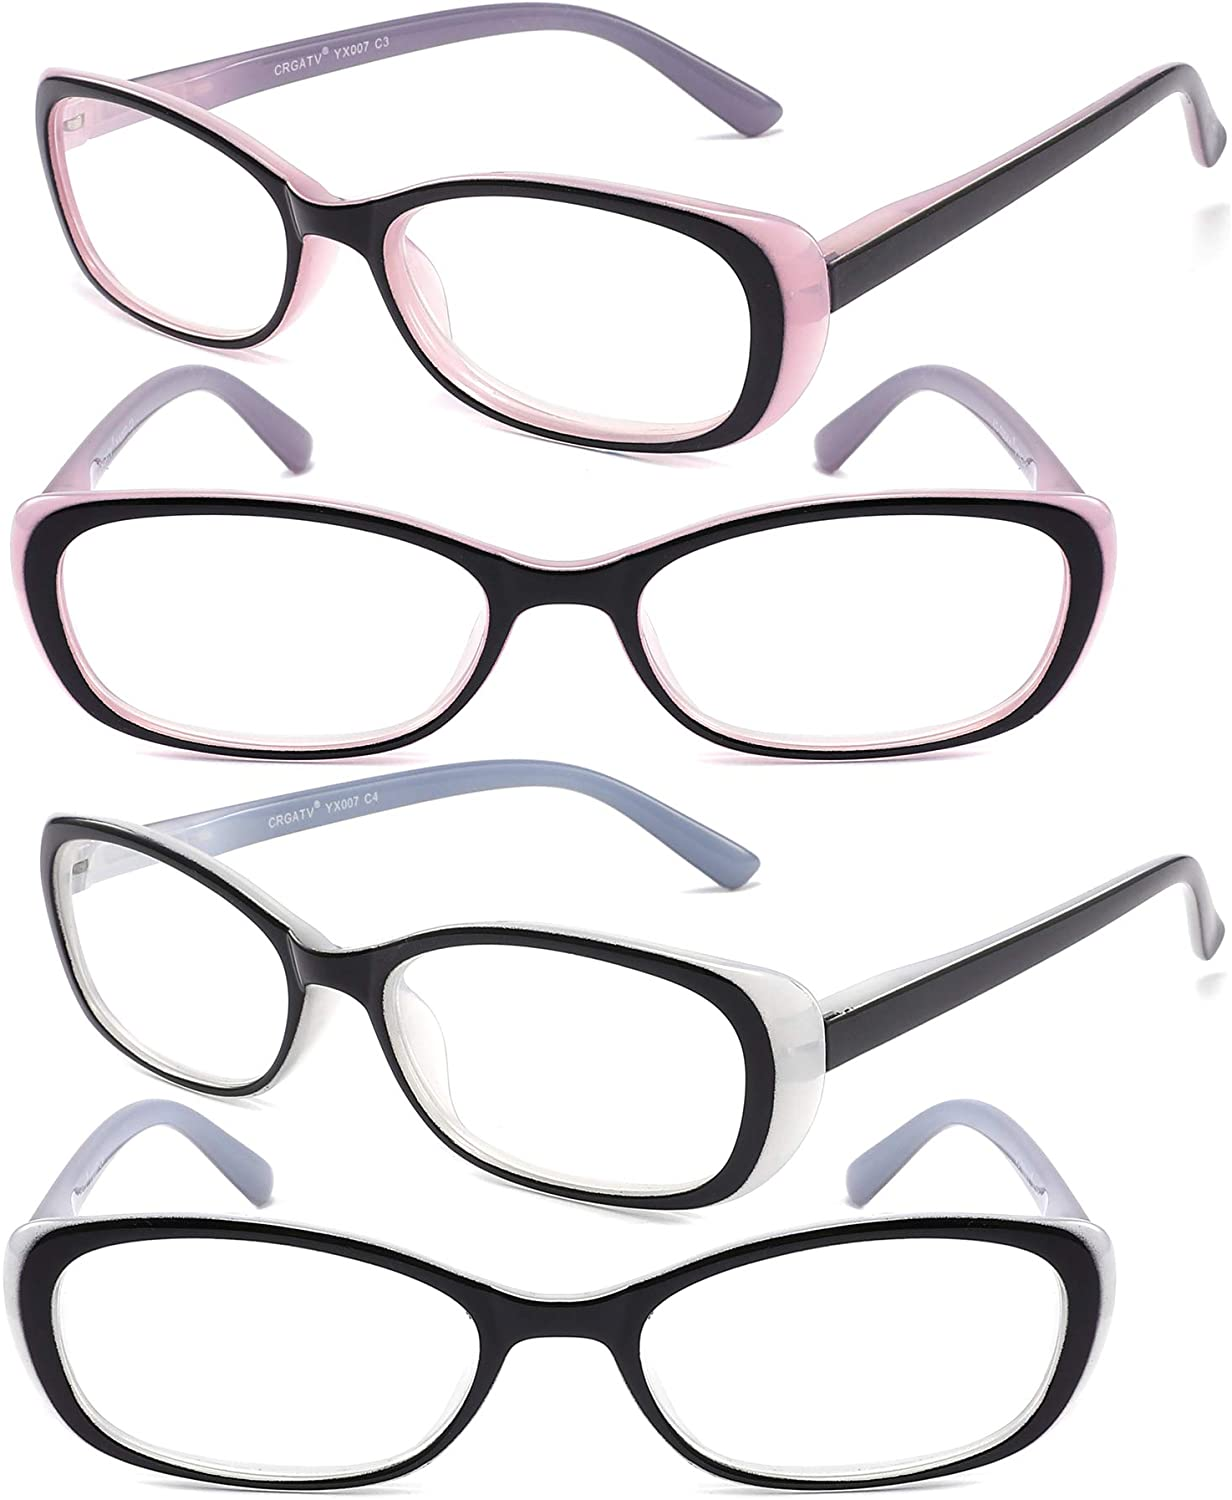 CRGATV 4 Pairs Ladies Reading Glasses Fashionable Quality Glasses Bright-Coloured Readers with Spring Hinge Designed for Women